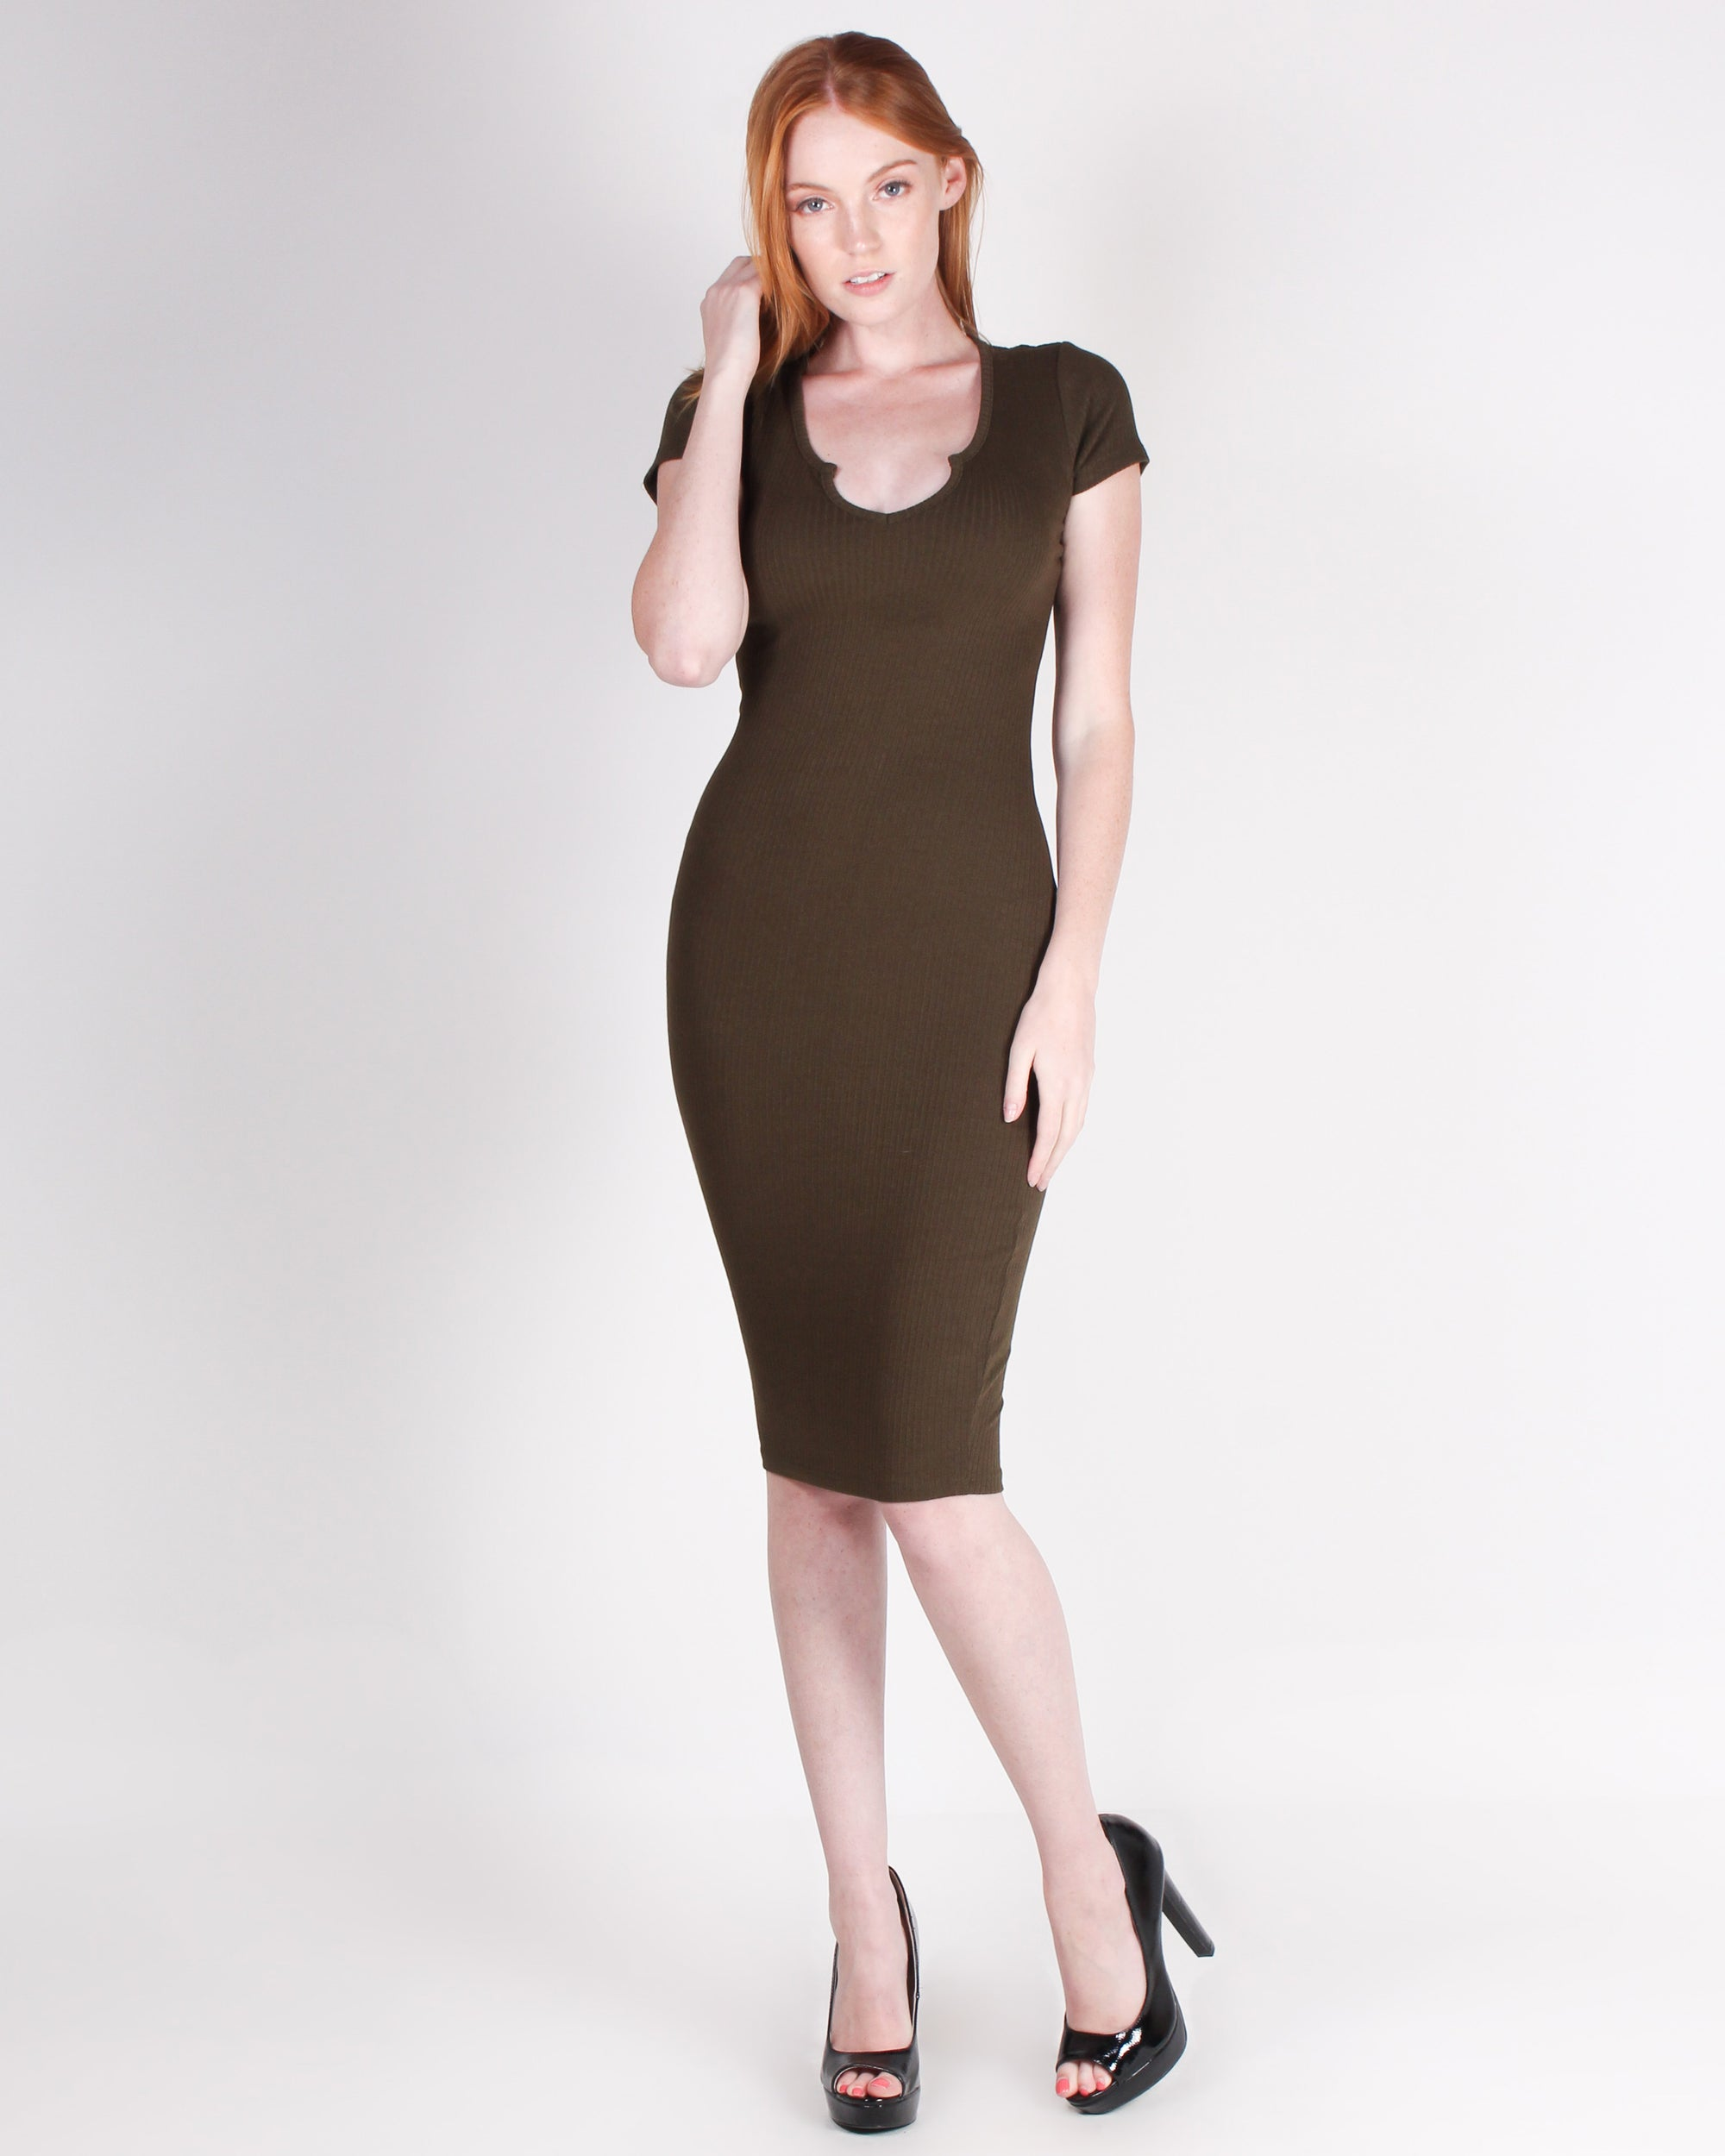 Fashion Q Shop Q So What, Look at This  Bodycon Dress (Dark Olive) RD68295